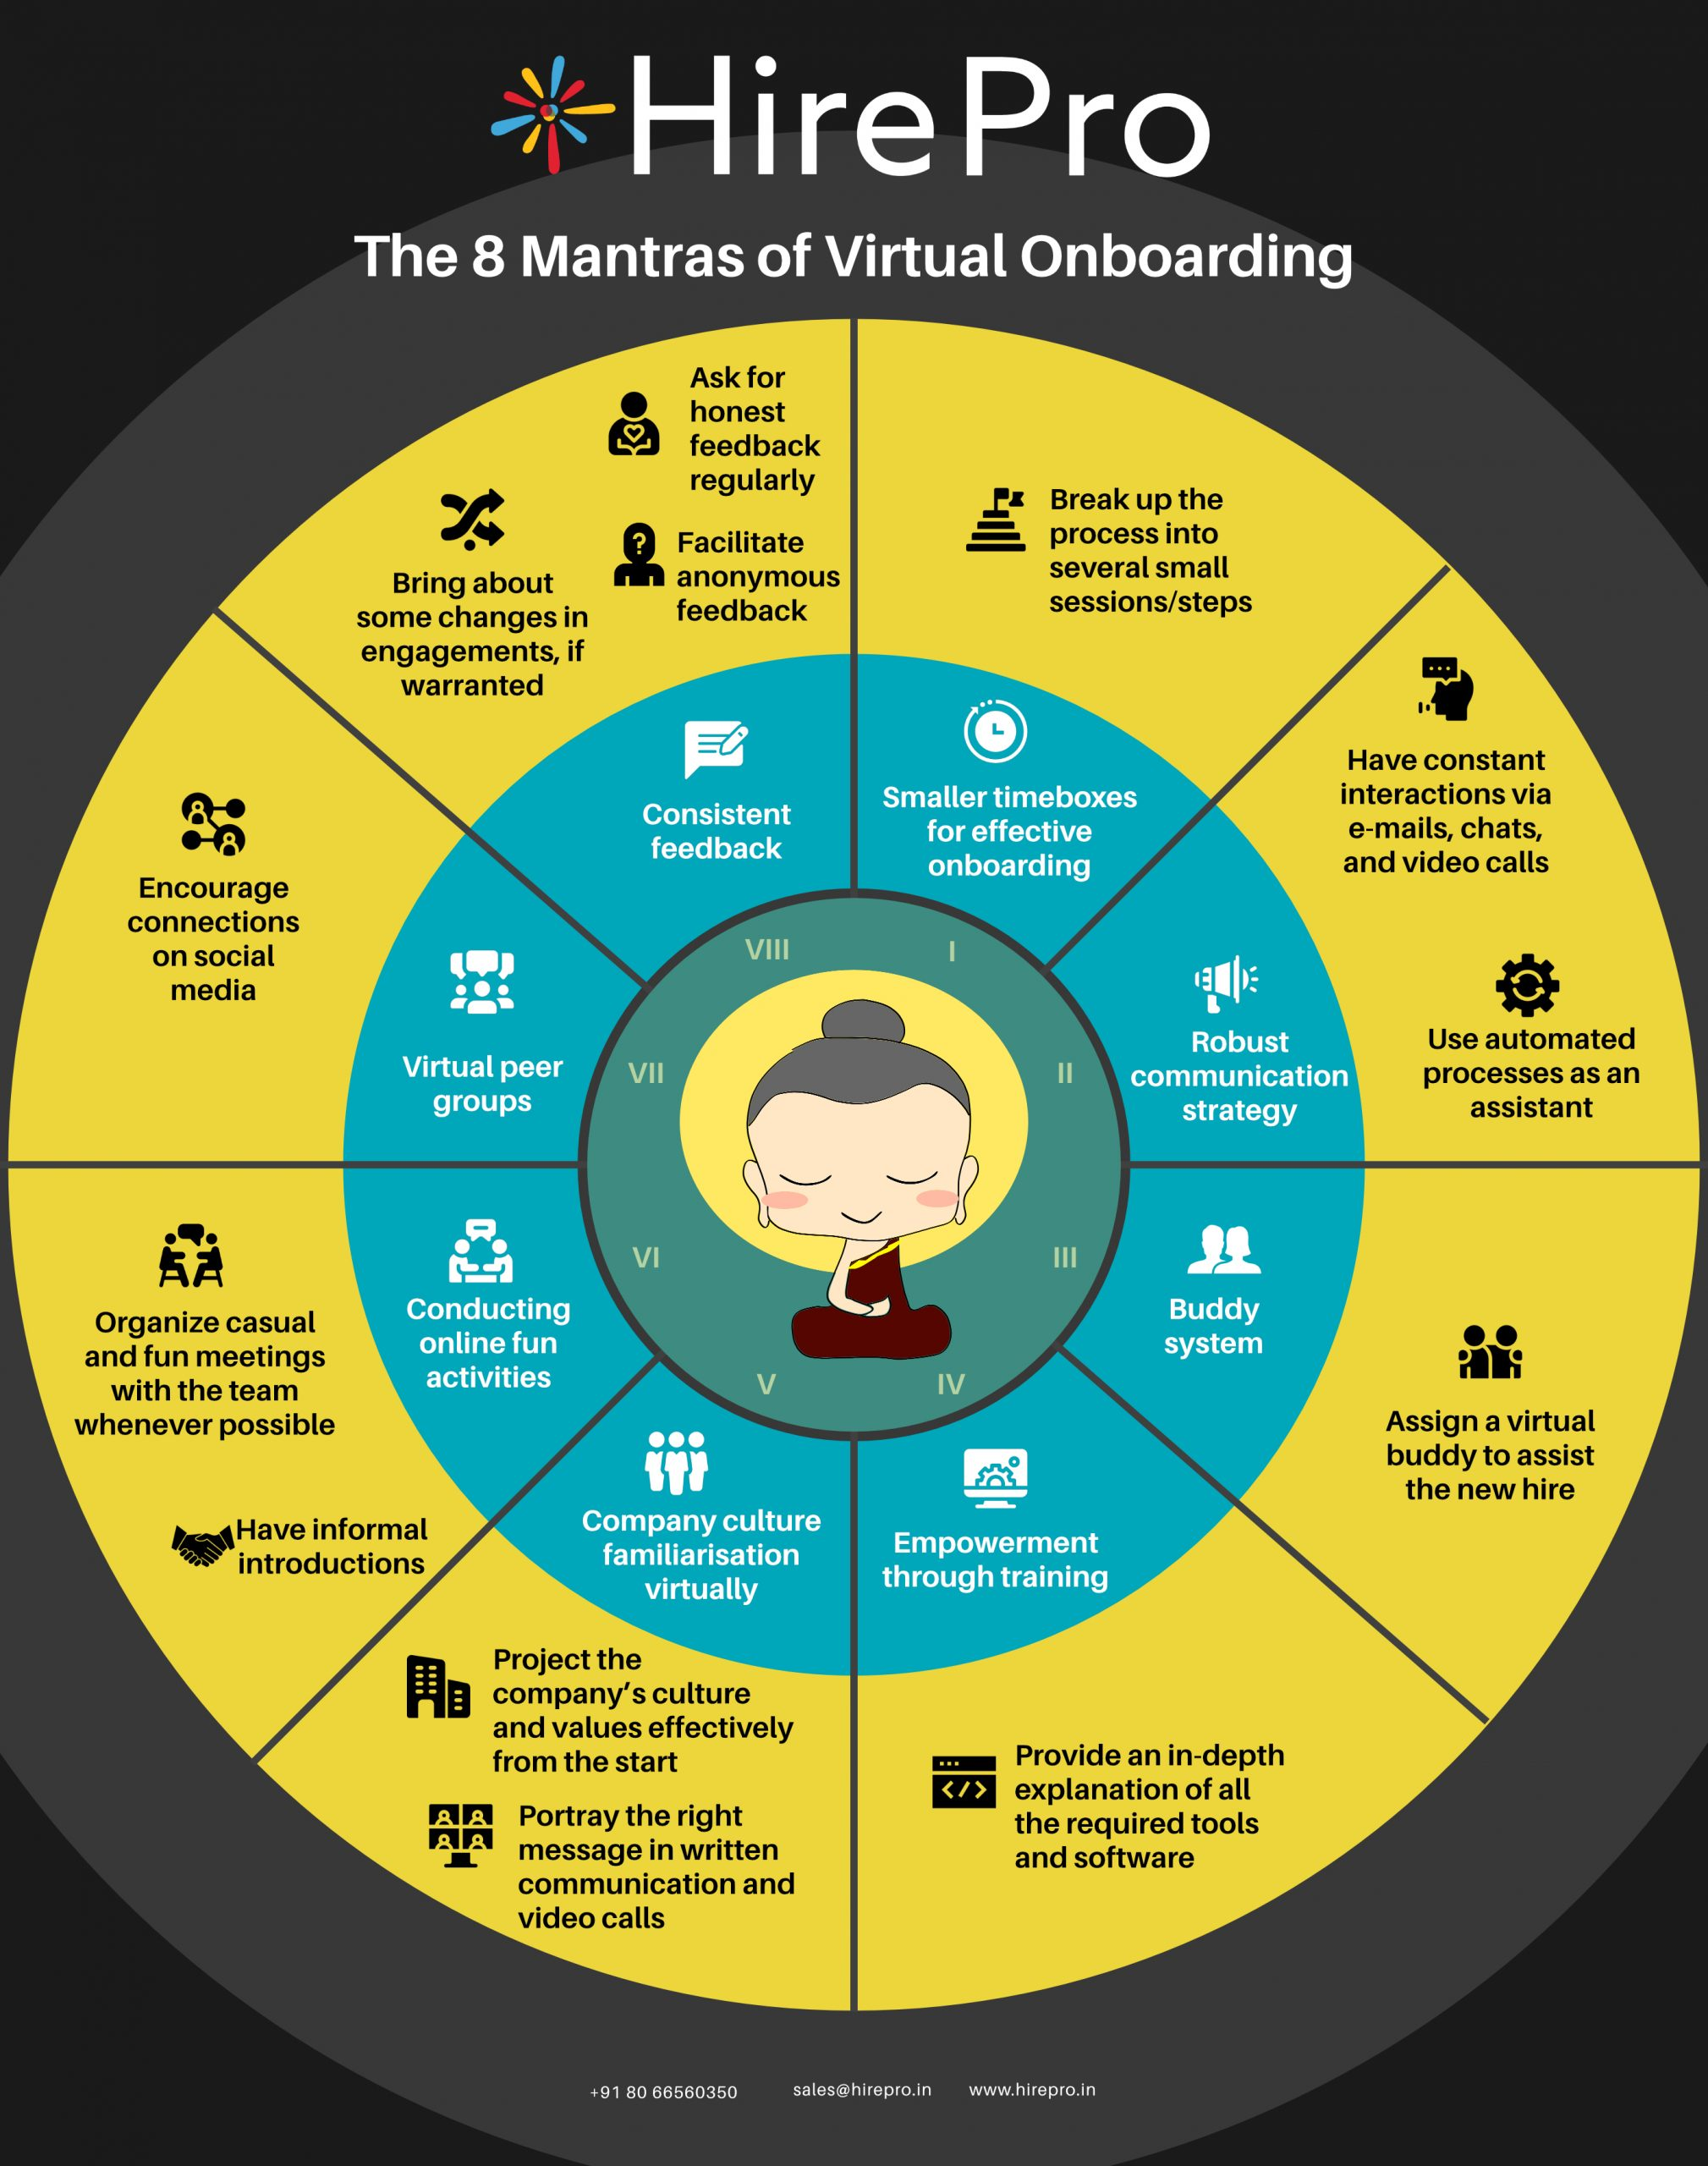 The 8 Mantras of Virtual Onboarding